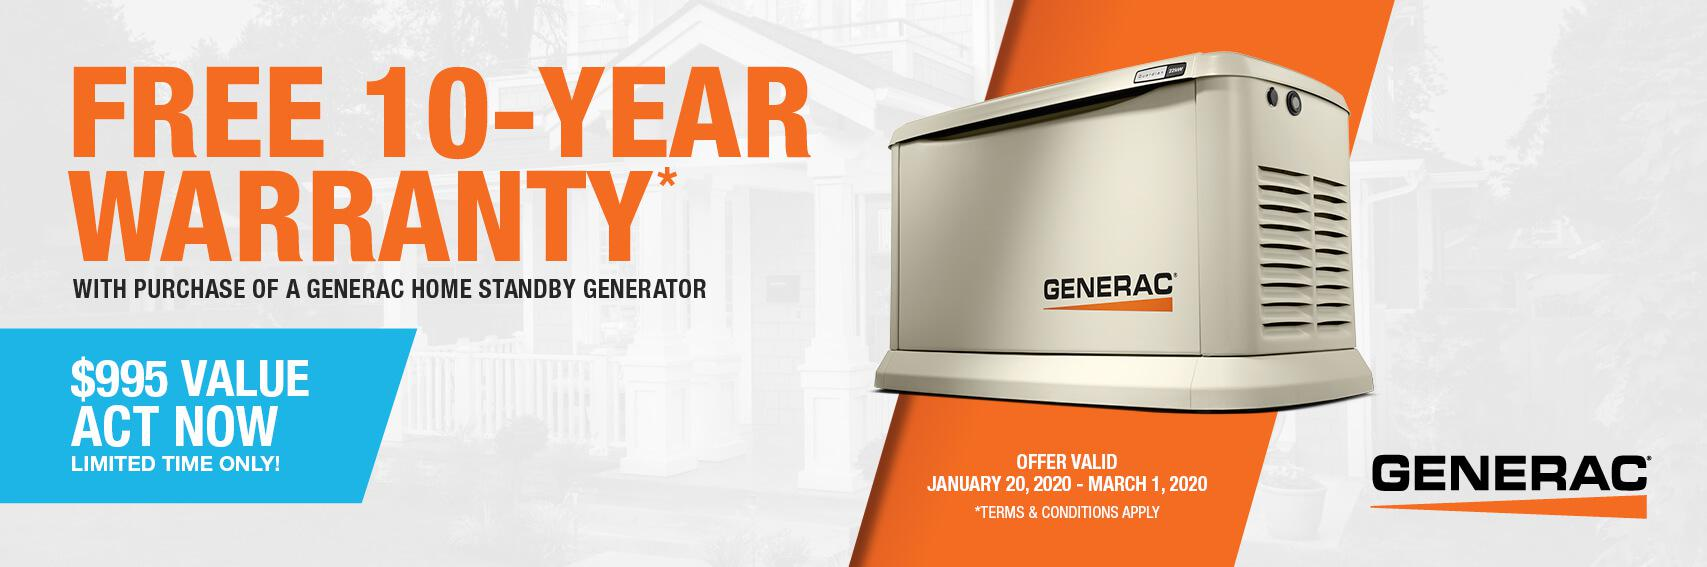 Homestandby Generator Deal | Warranty Offer | Generac Dealer | Midland, MI